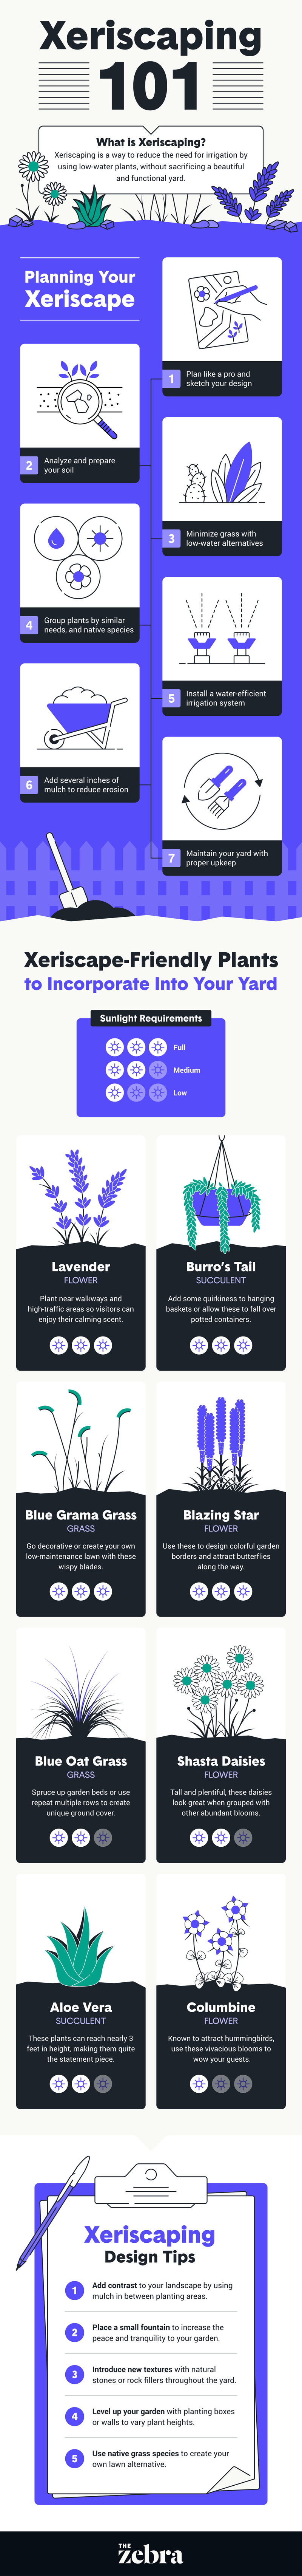 xeriscaping 101 infographic